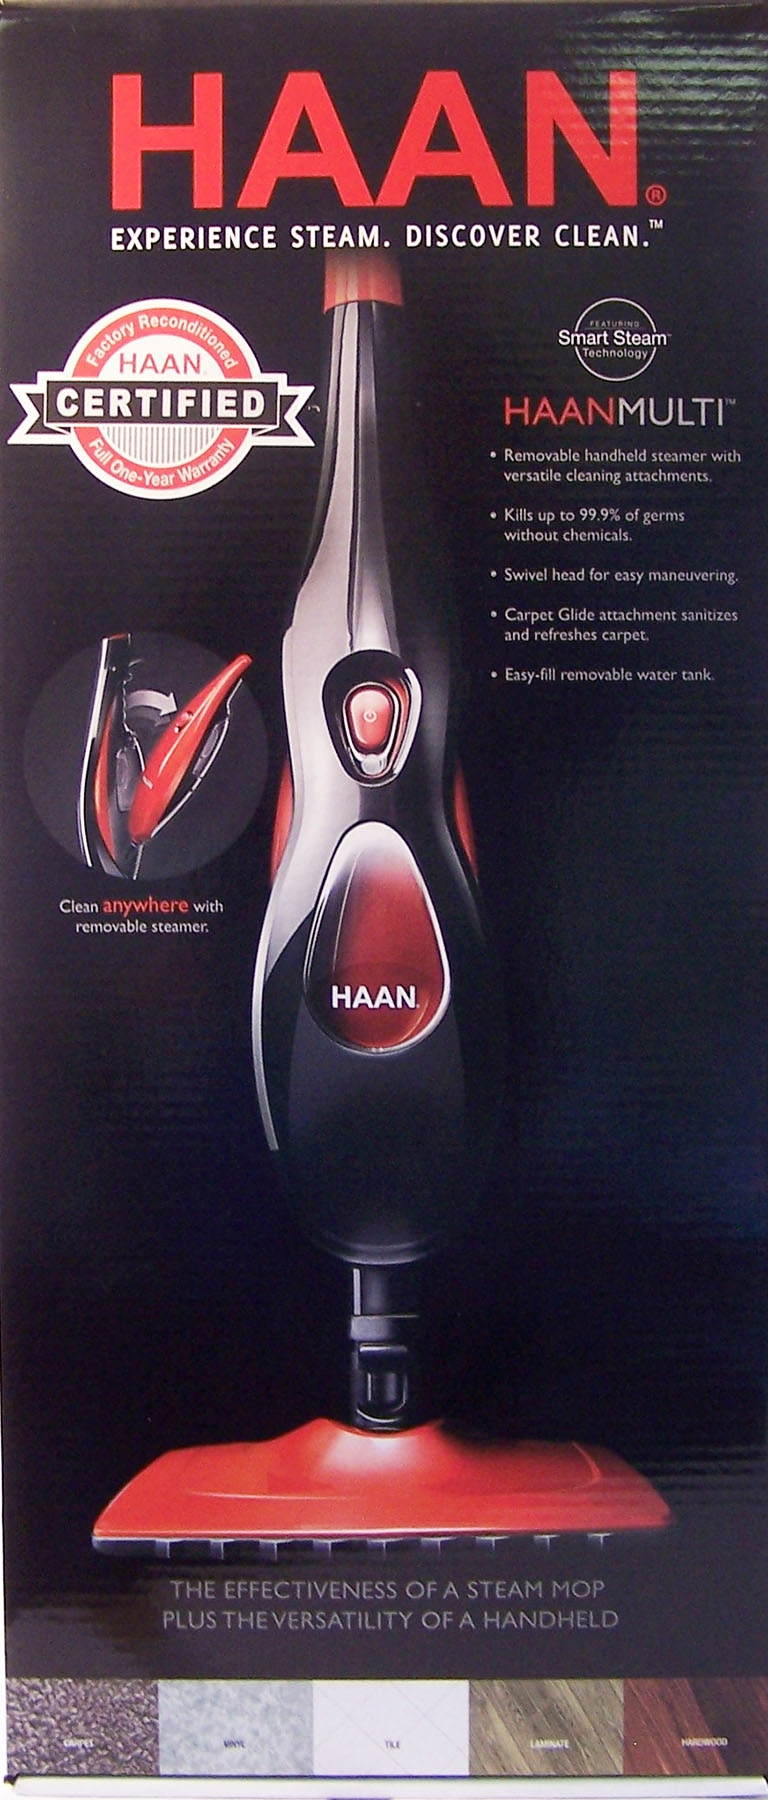 Haan Red Refurbished Steam Mop w/Removable Handheld Steamer